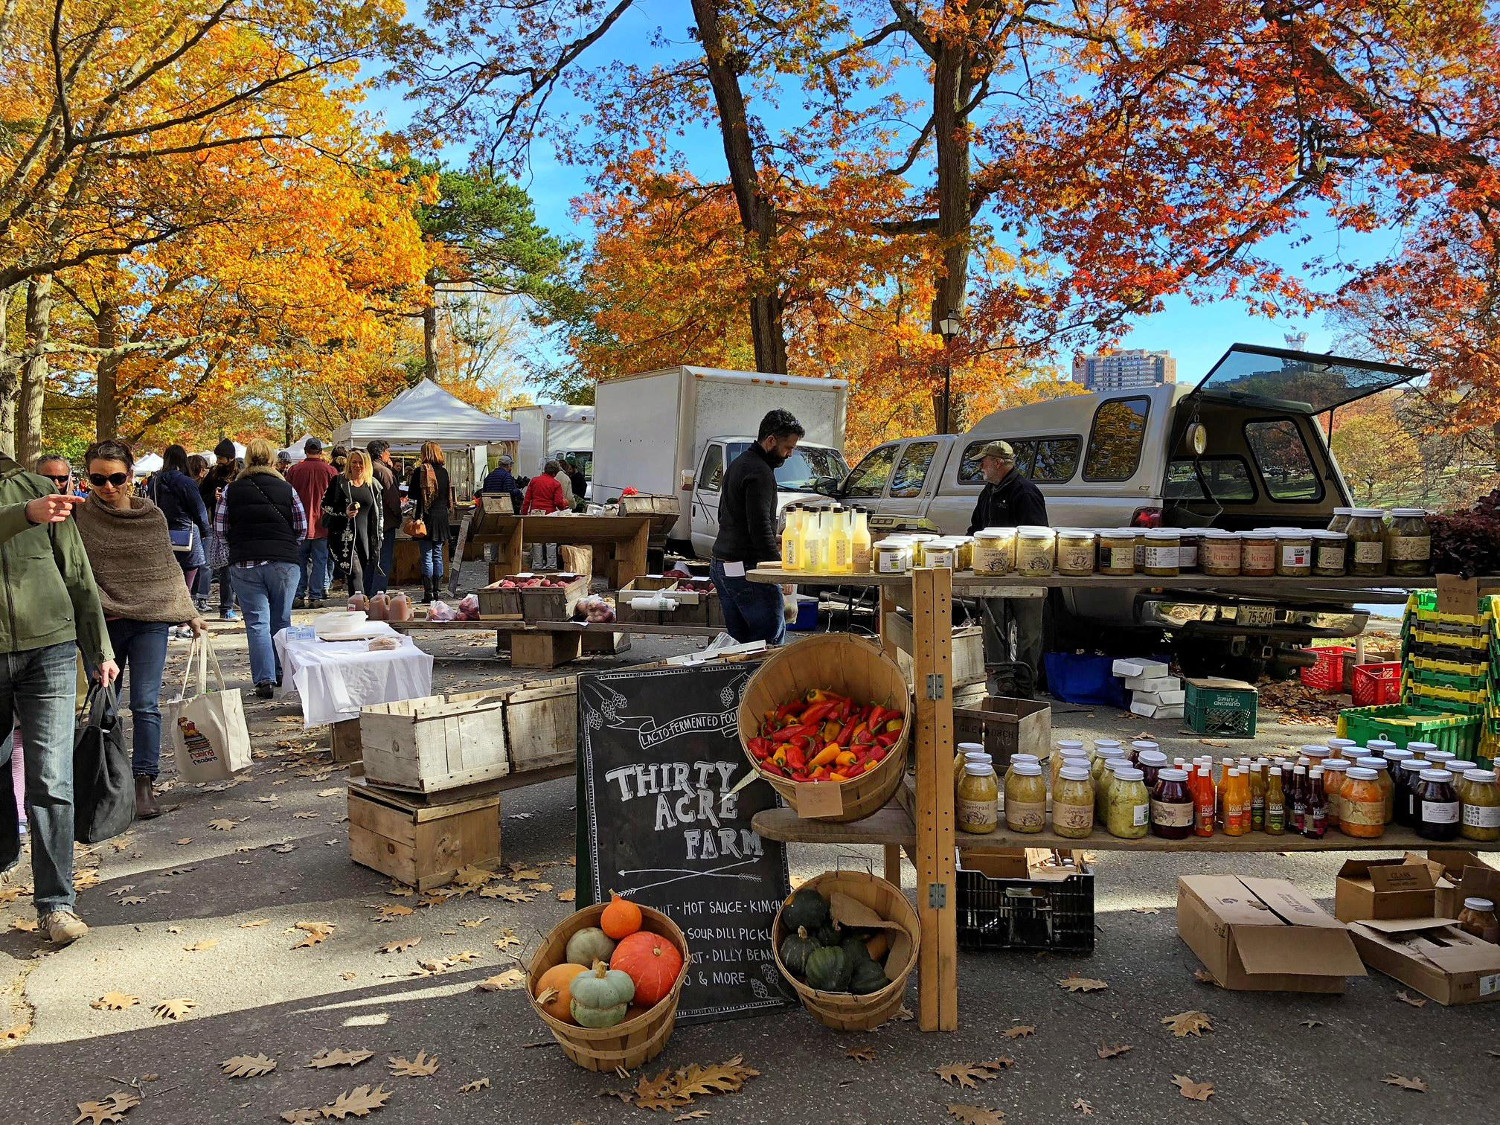 Farmers Market in Deering